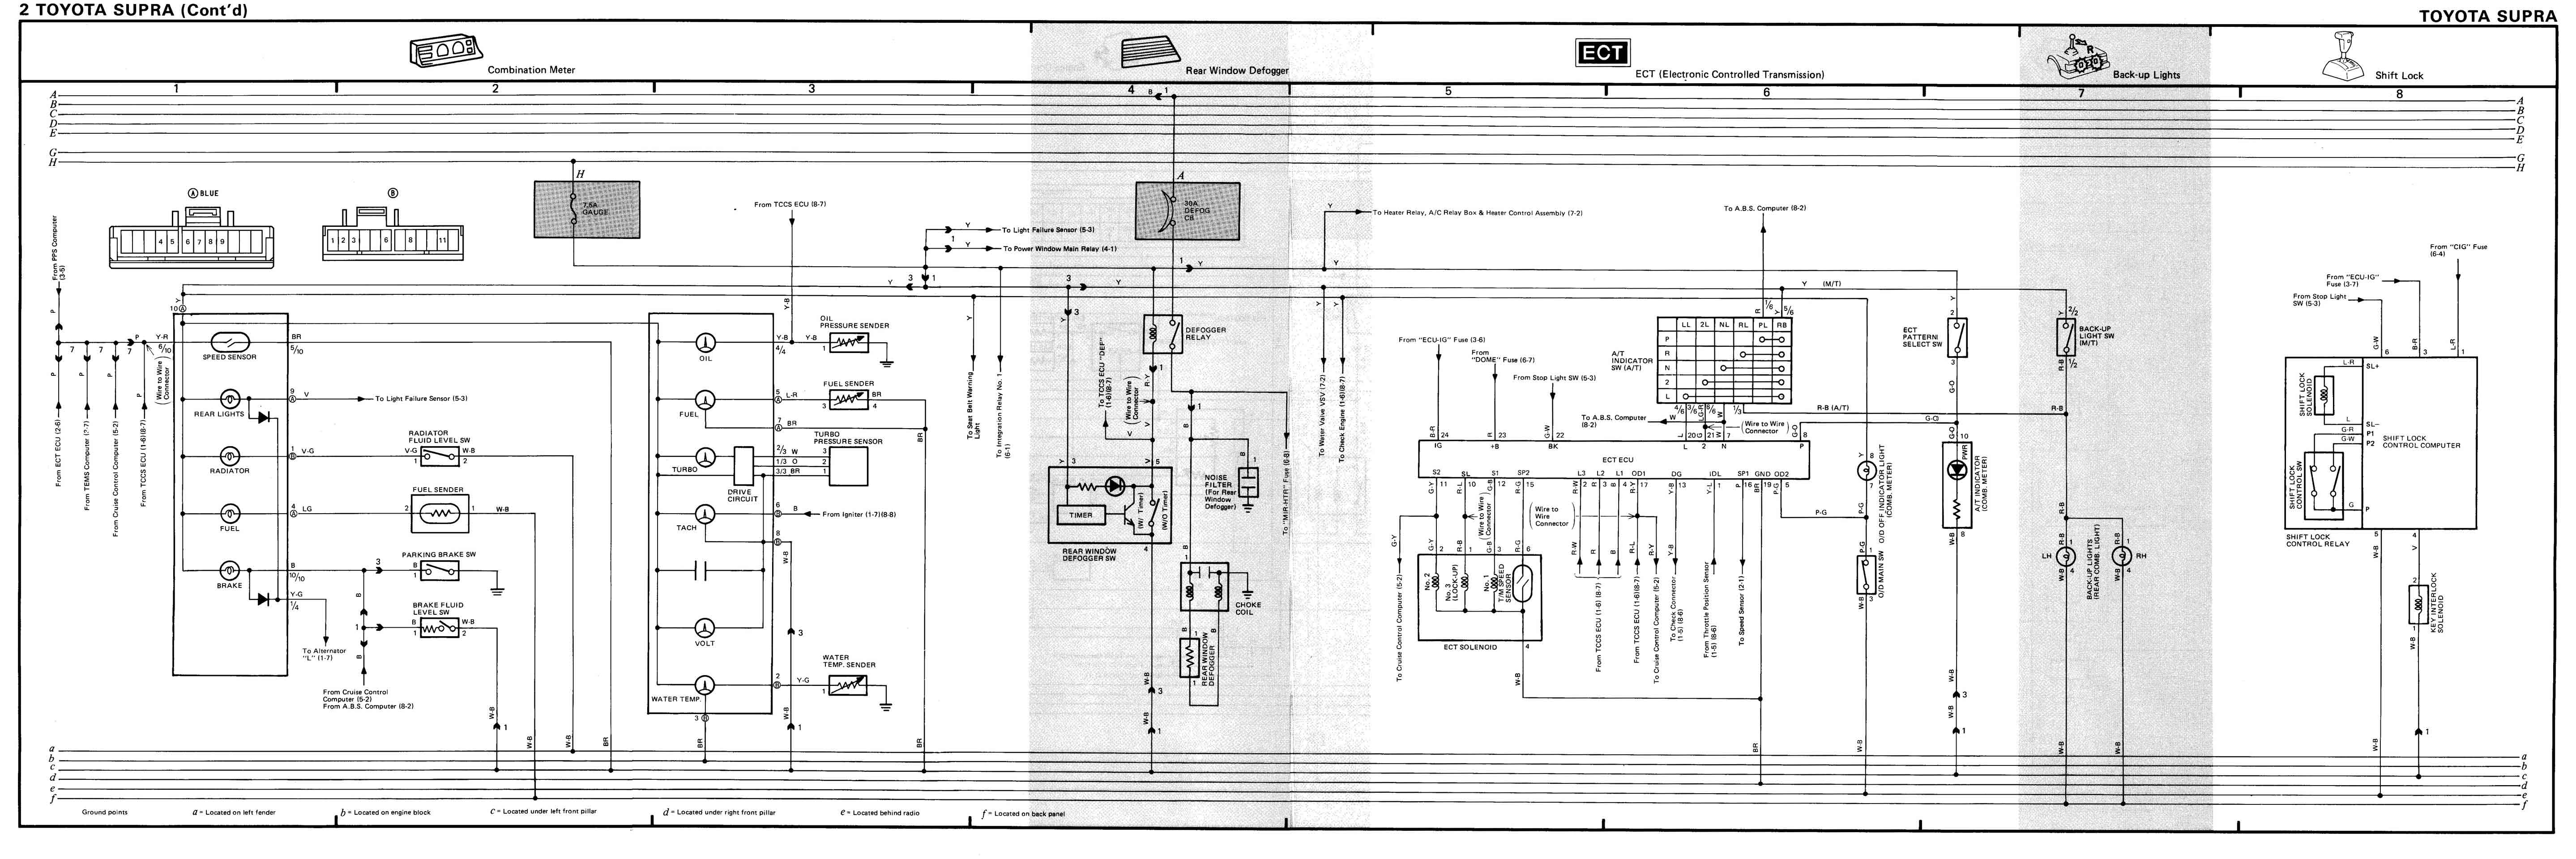 7mgte Toyota 3 0 Engine Diagram Great Installation Of Wiring 1989 V6 Library Rh 94 Codingcommunity De 30 Schematics